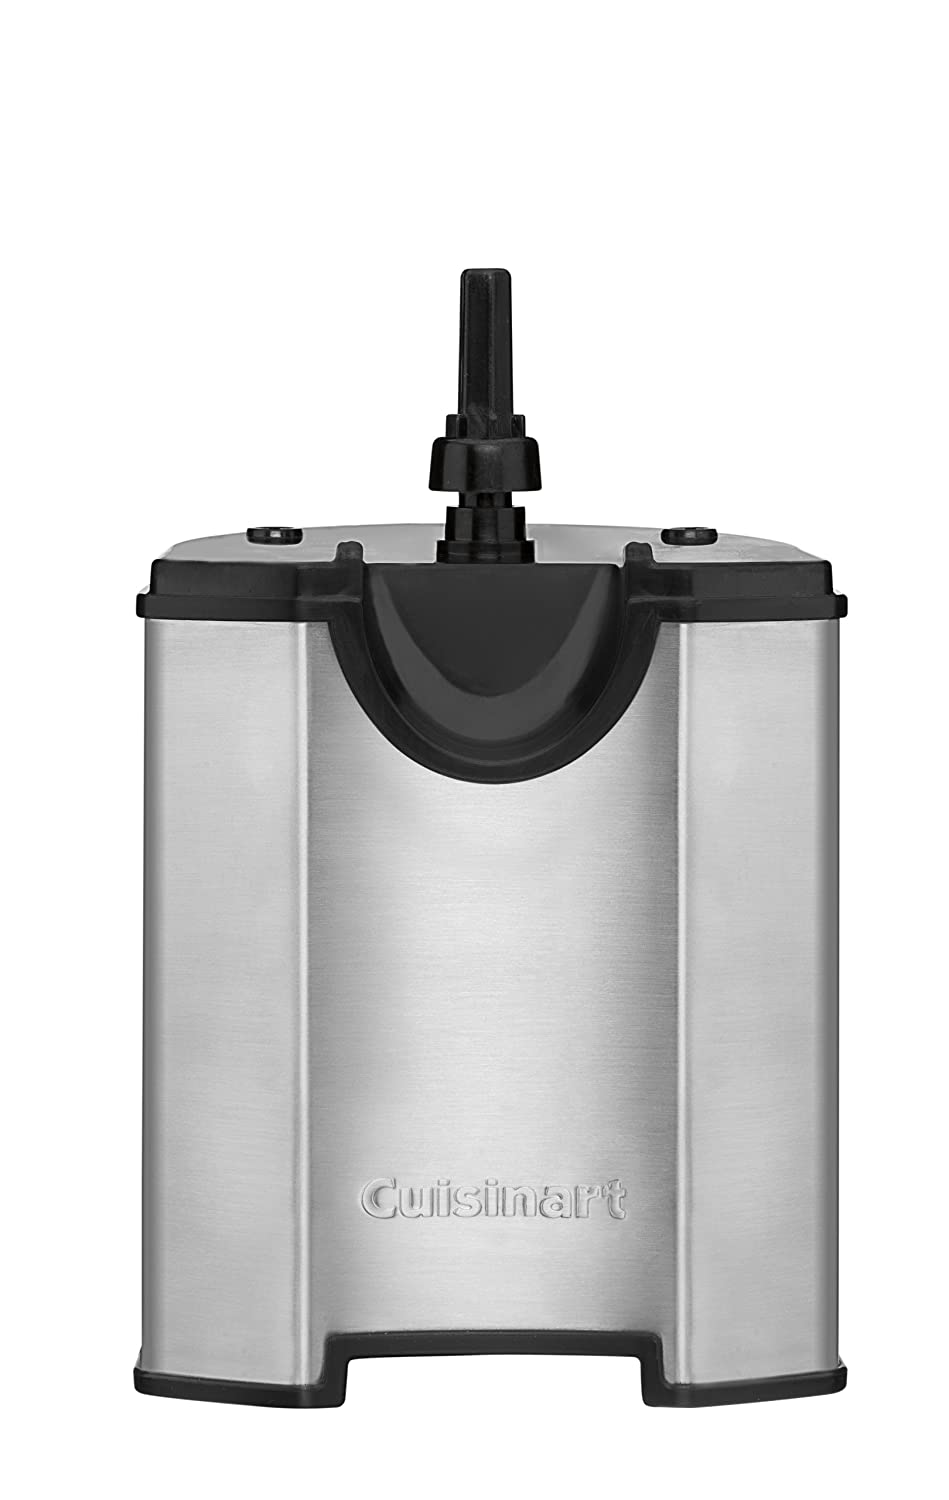 Cuisinart CCJ-500 Pulp Control Citrus Juicer, Brushed Stainless half